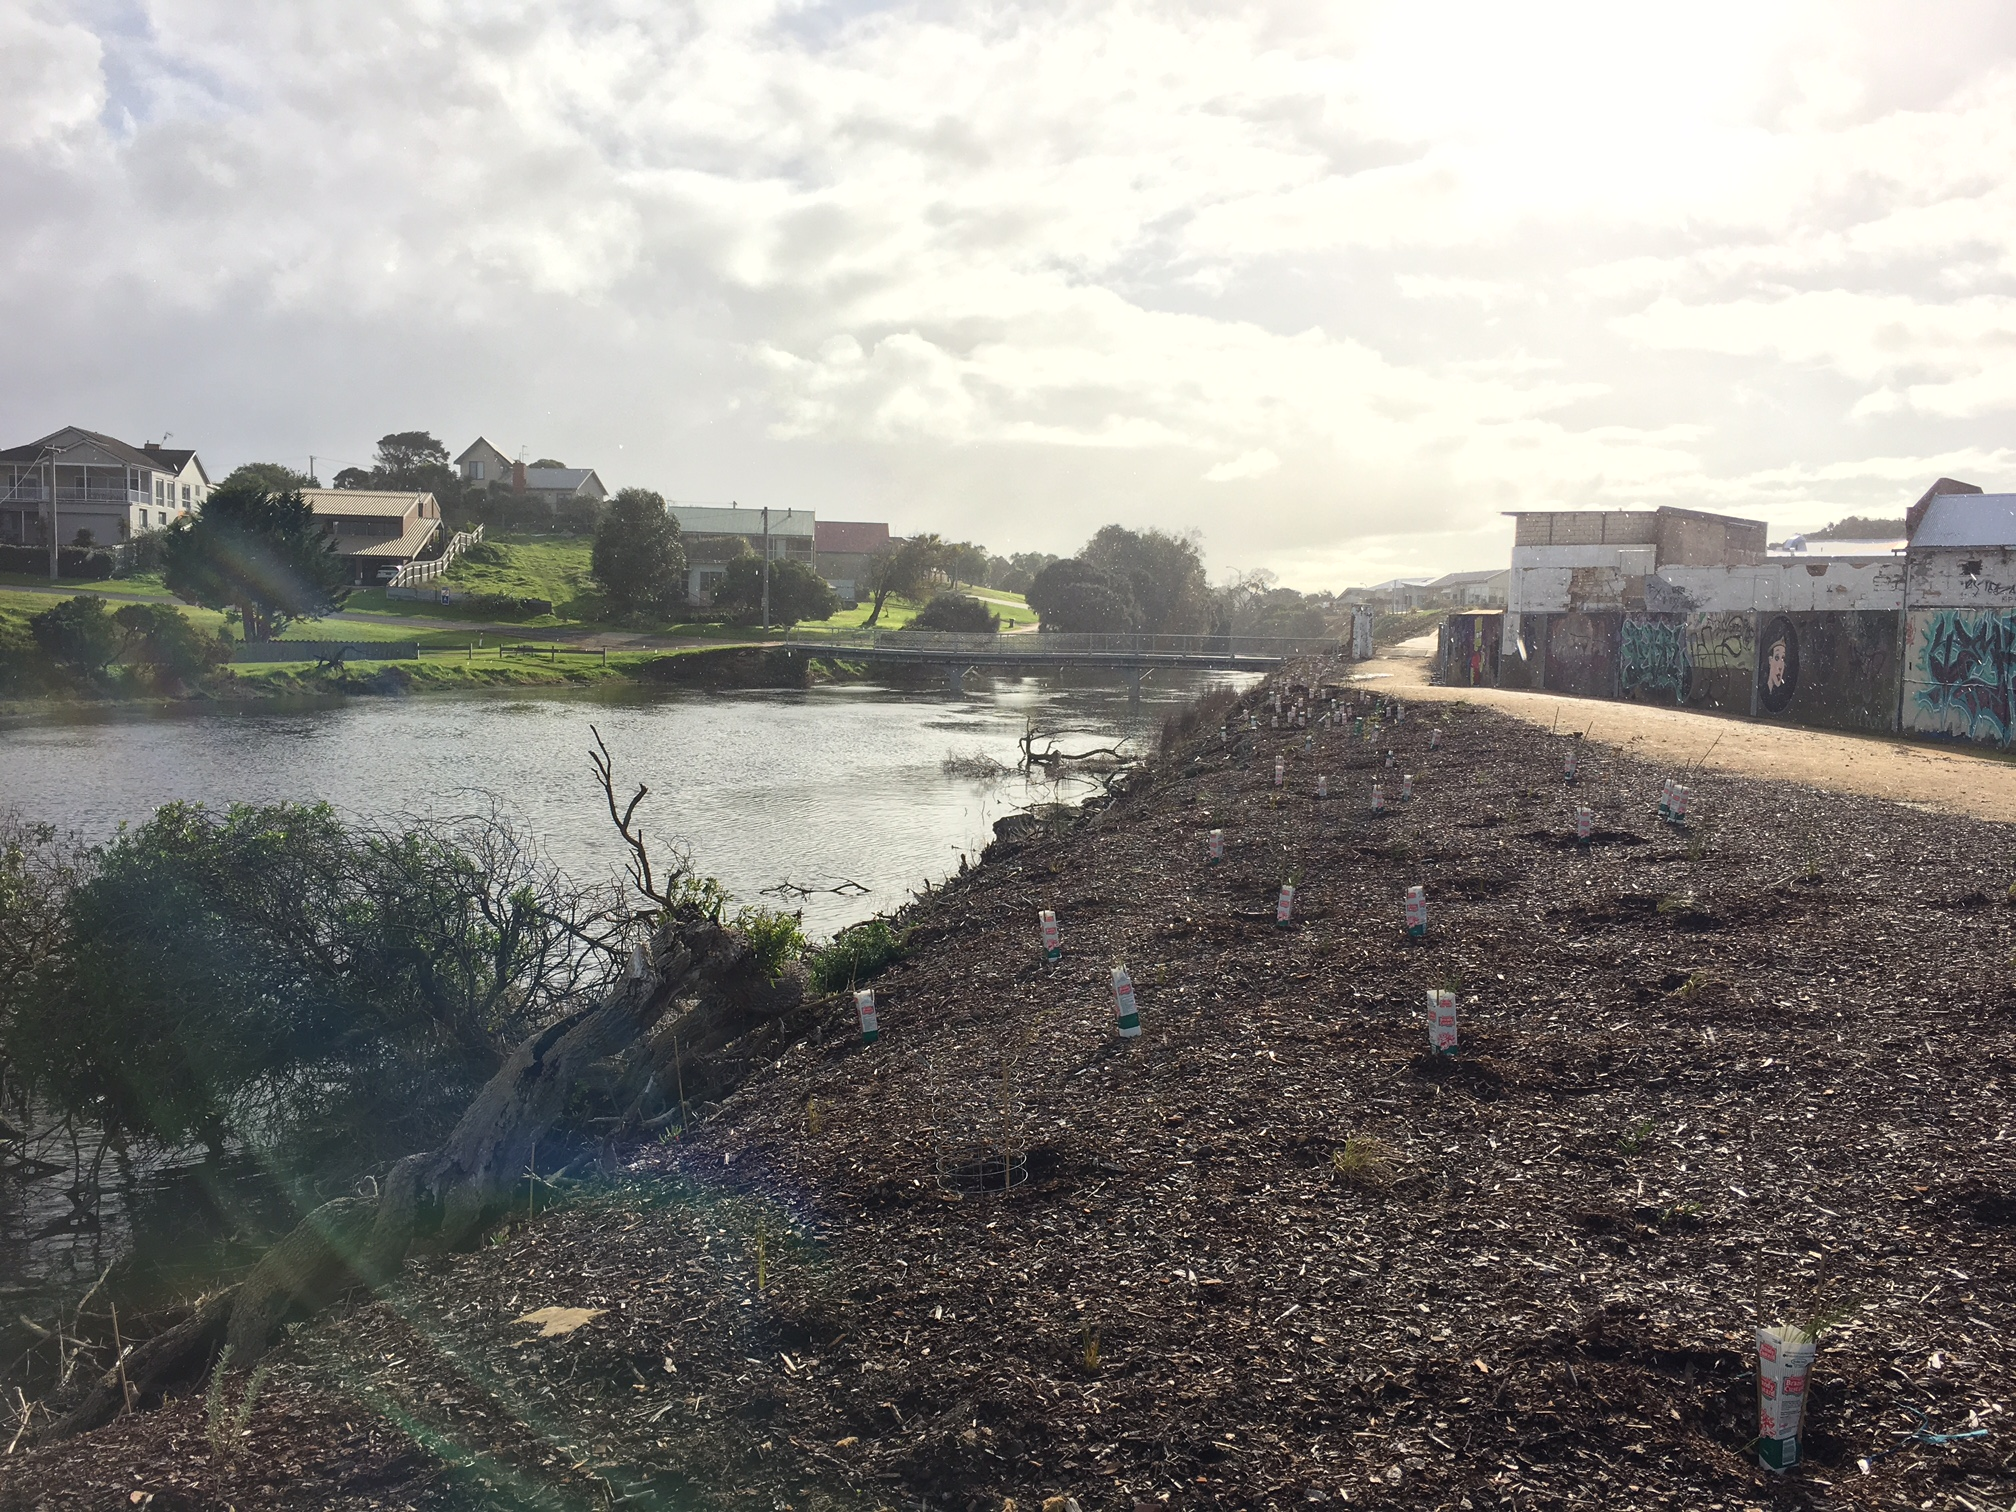 Removal of weeds and preparing bank for new native vegetation